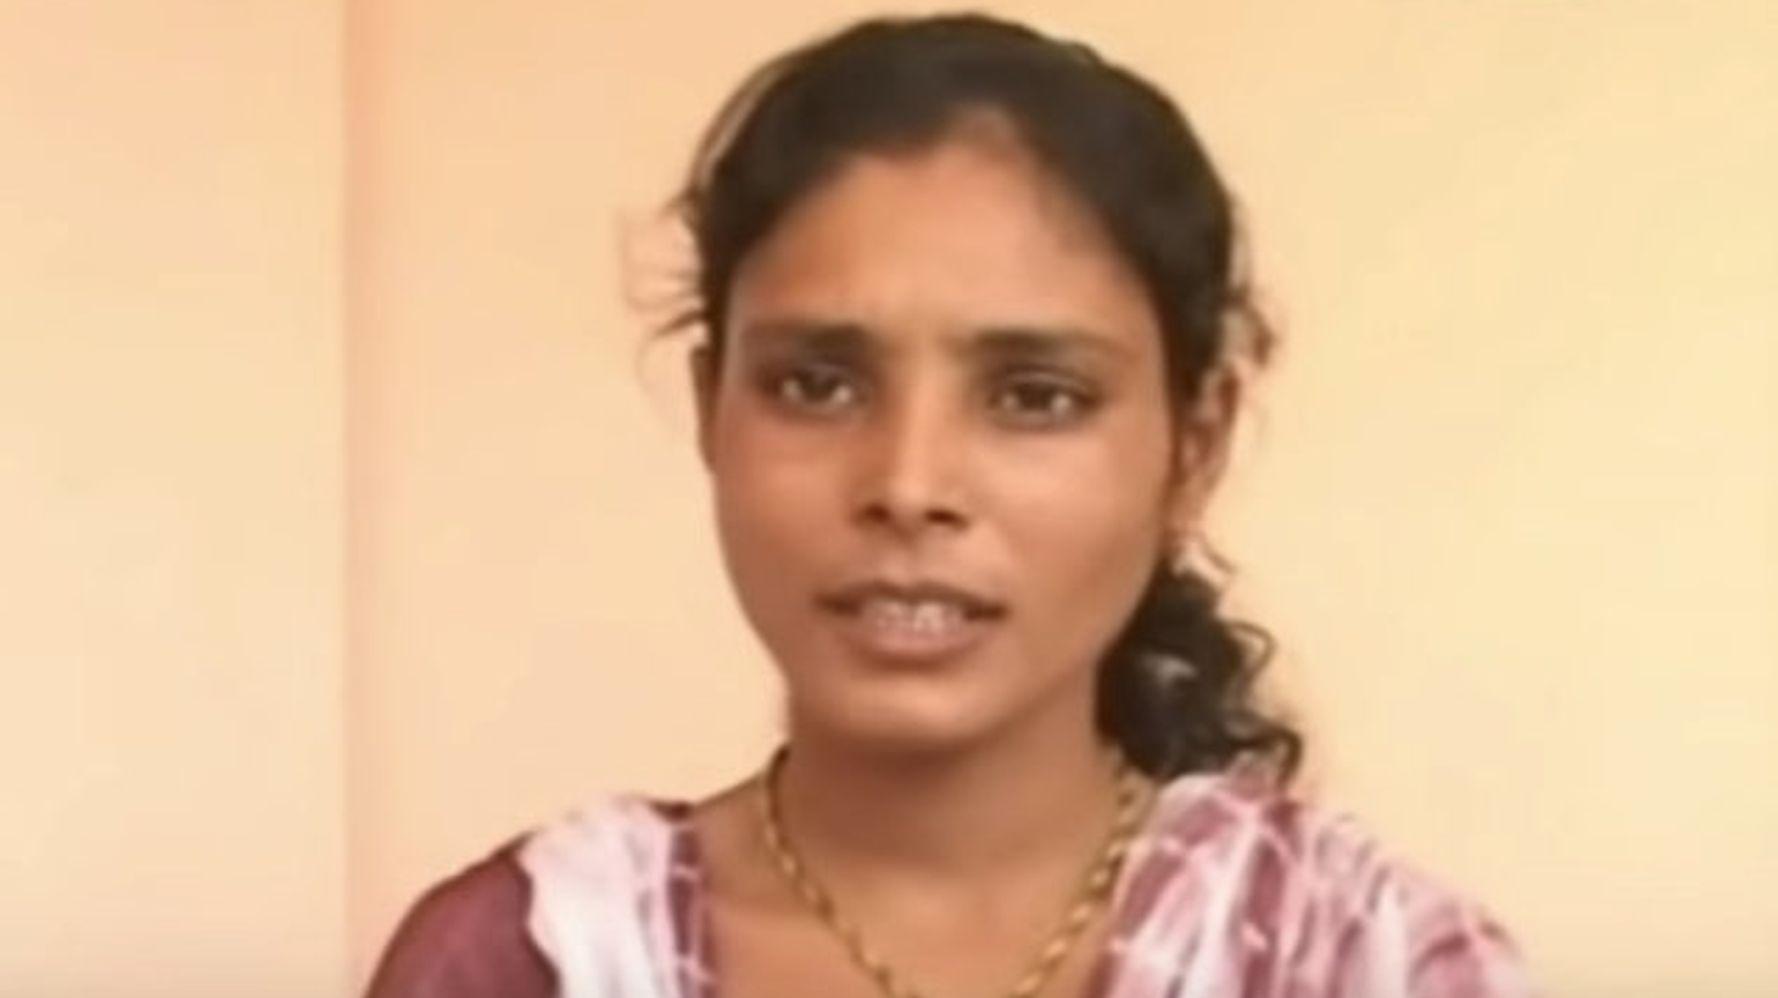 Indian Woman Who Was Married Off At Just 11 Months Old Fights Against Child Marriage